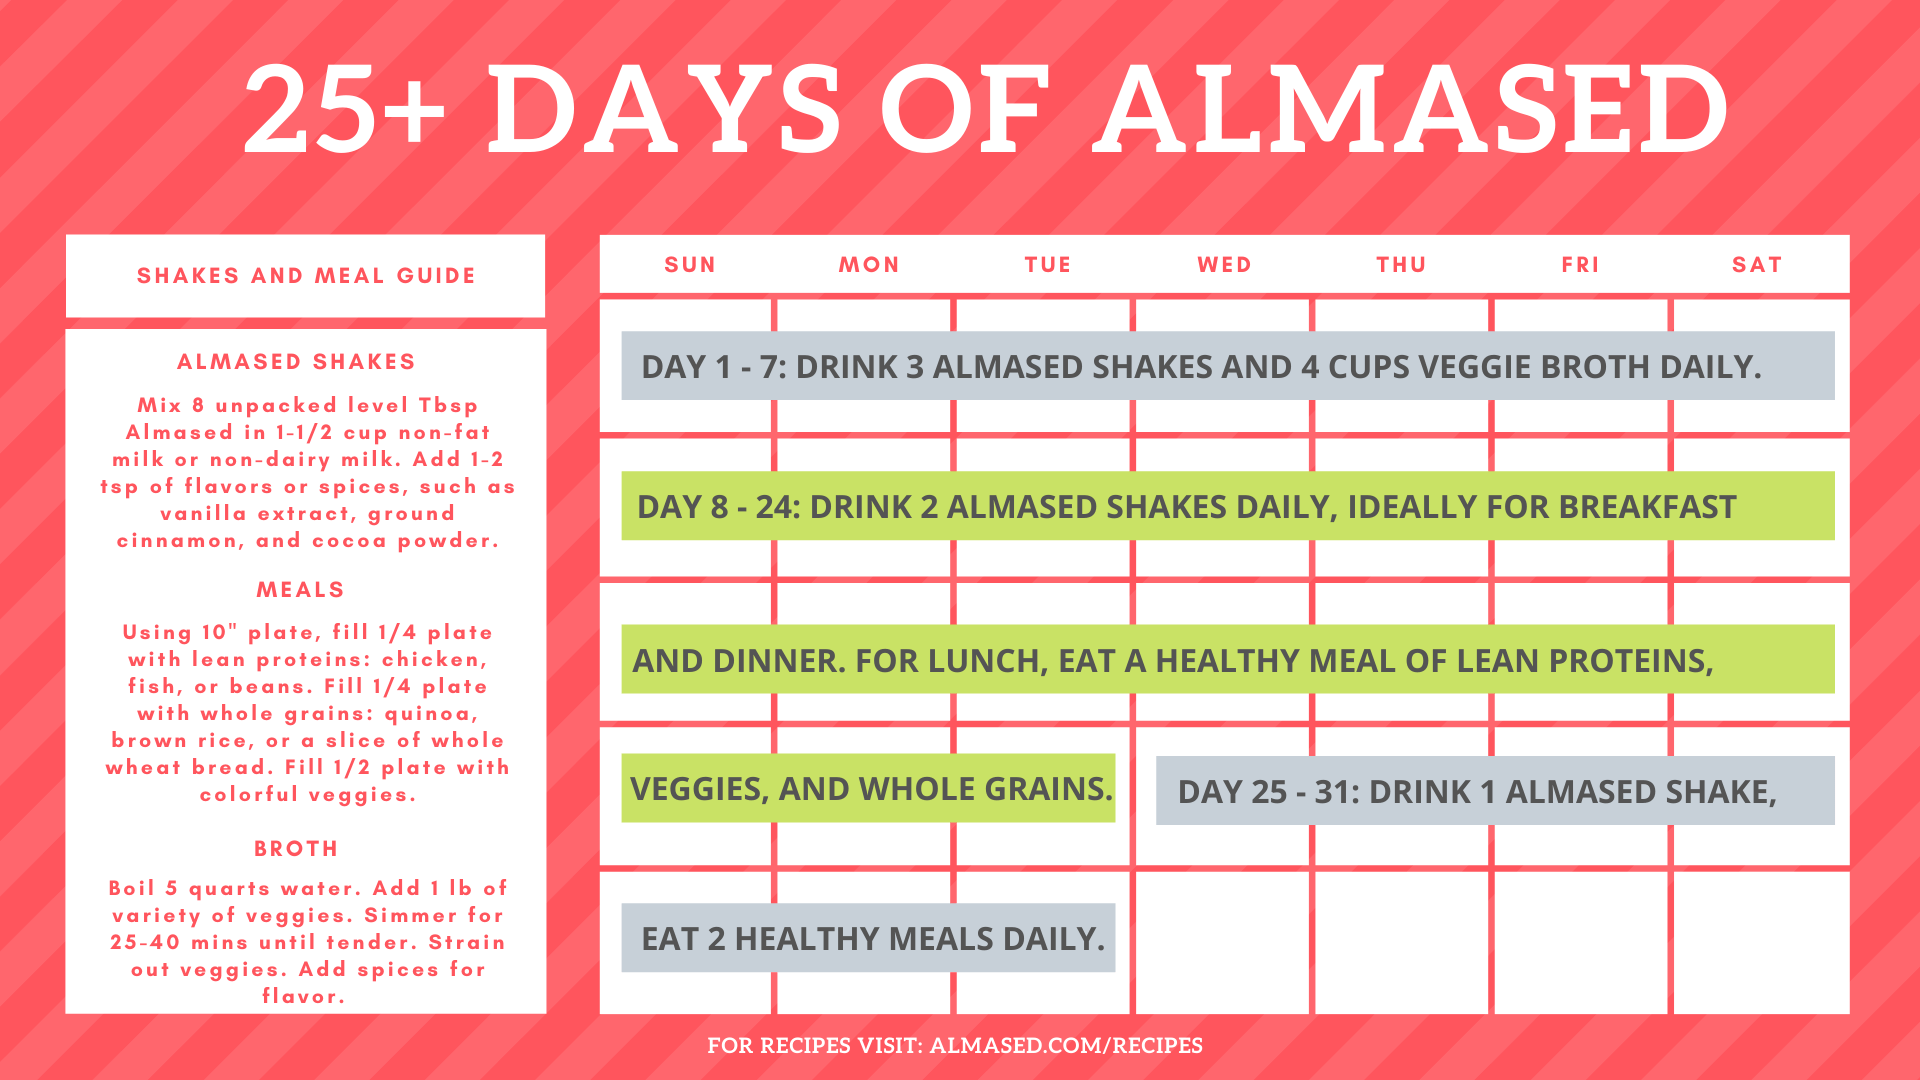 How to Lose Weight Fast: 25 Days of Almased - Almased®